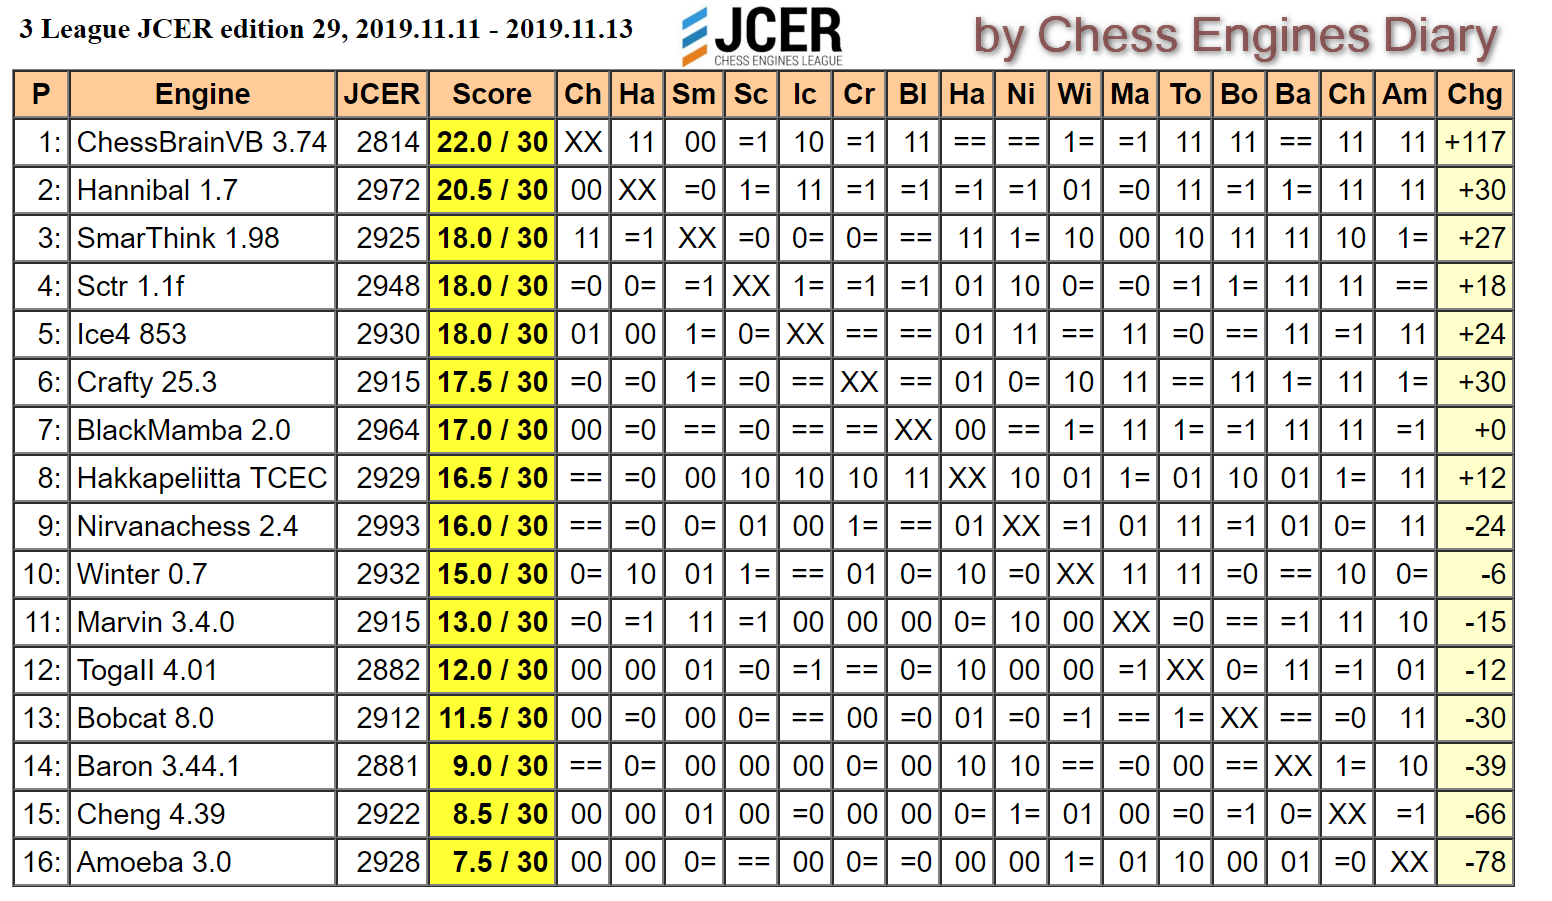 JCER (Jurek Chess Engines Rating) tournaments - Page 20 2019.11.11.3LeagueJCER.ed29Scid.html